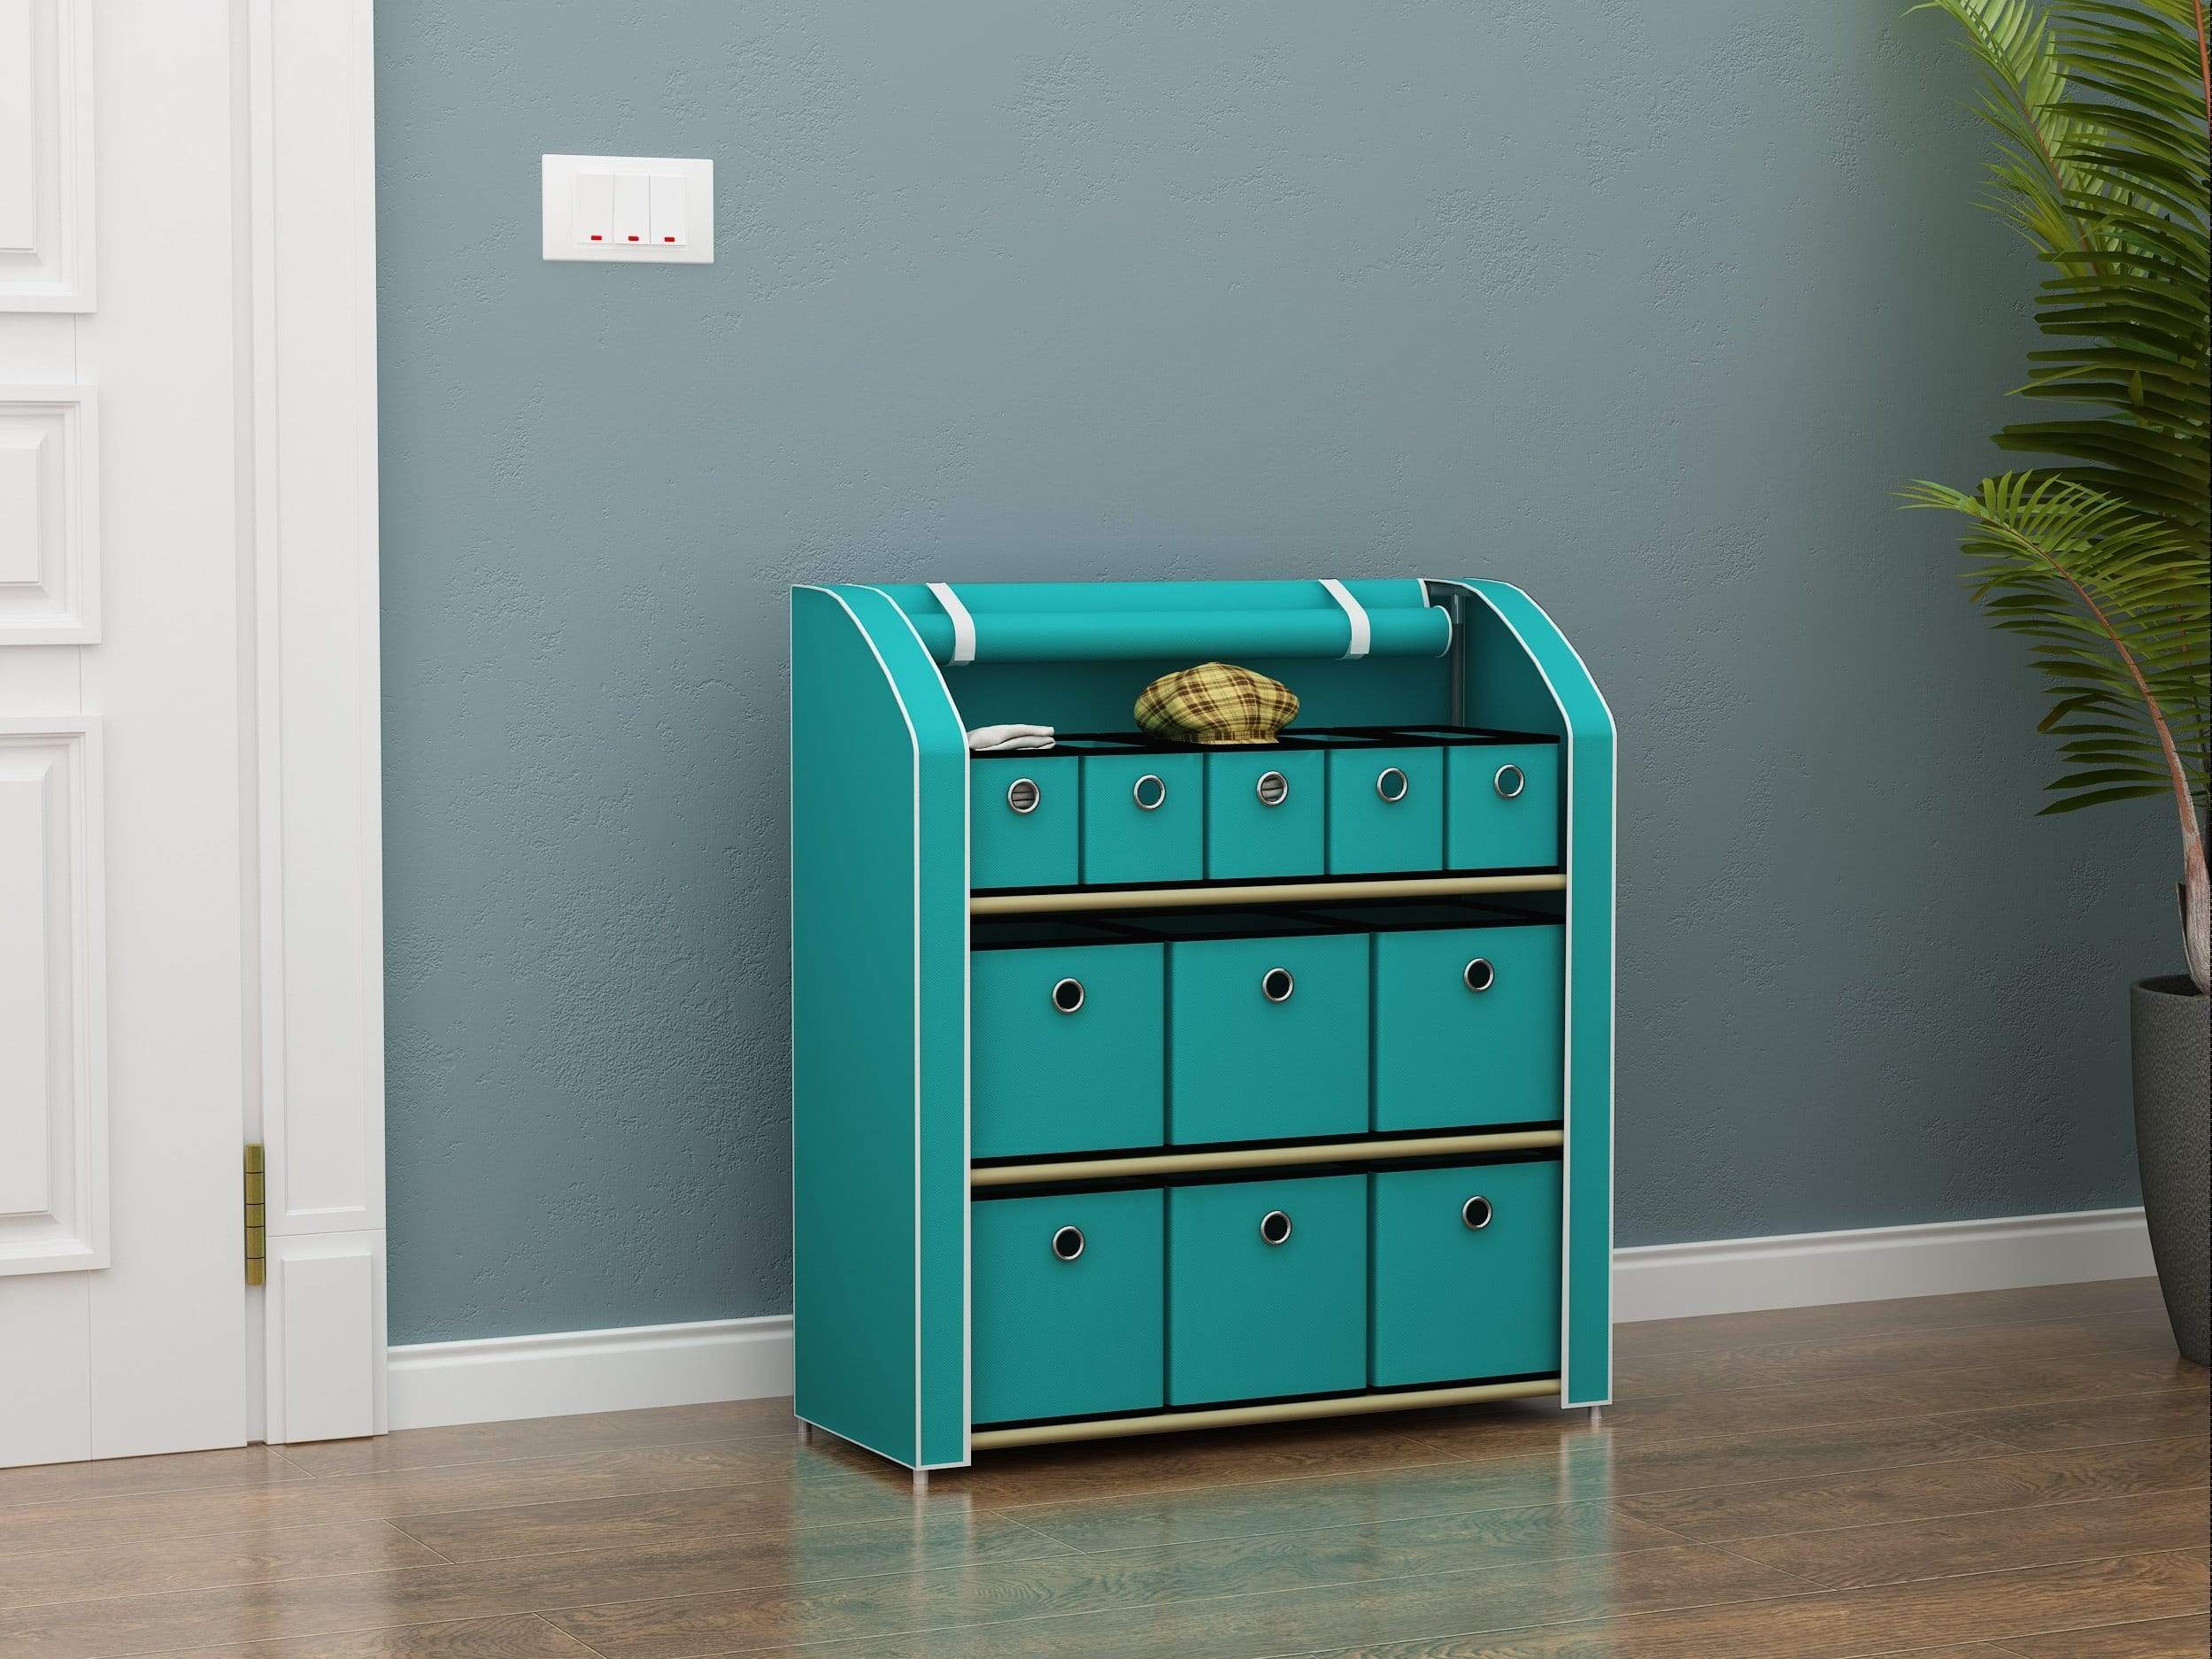 Order now homebi multi bin storage shelf 11 drawers storage chest linen organizer closet cabinet with zipper covered foldable fabric bins and sturdy metal shelf frame in turquoise 31w x12 dx32h